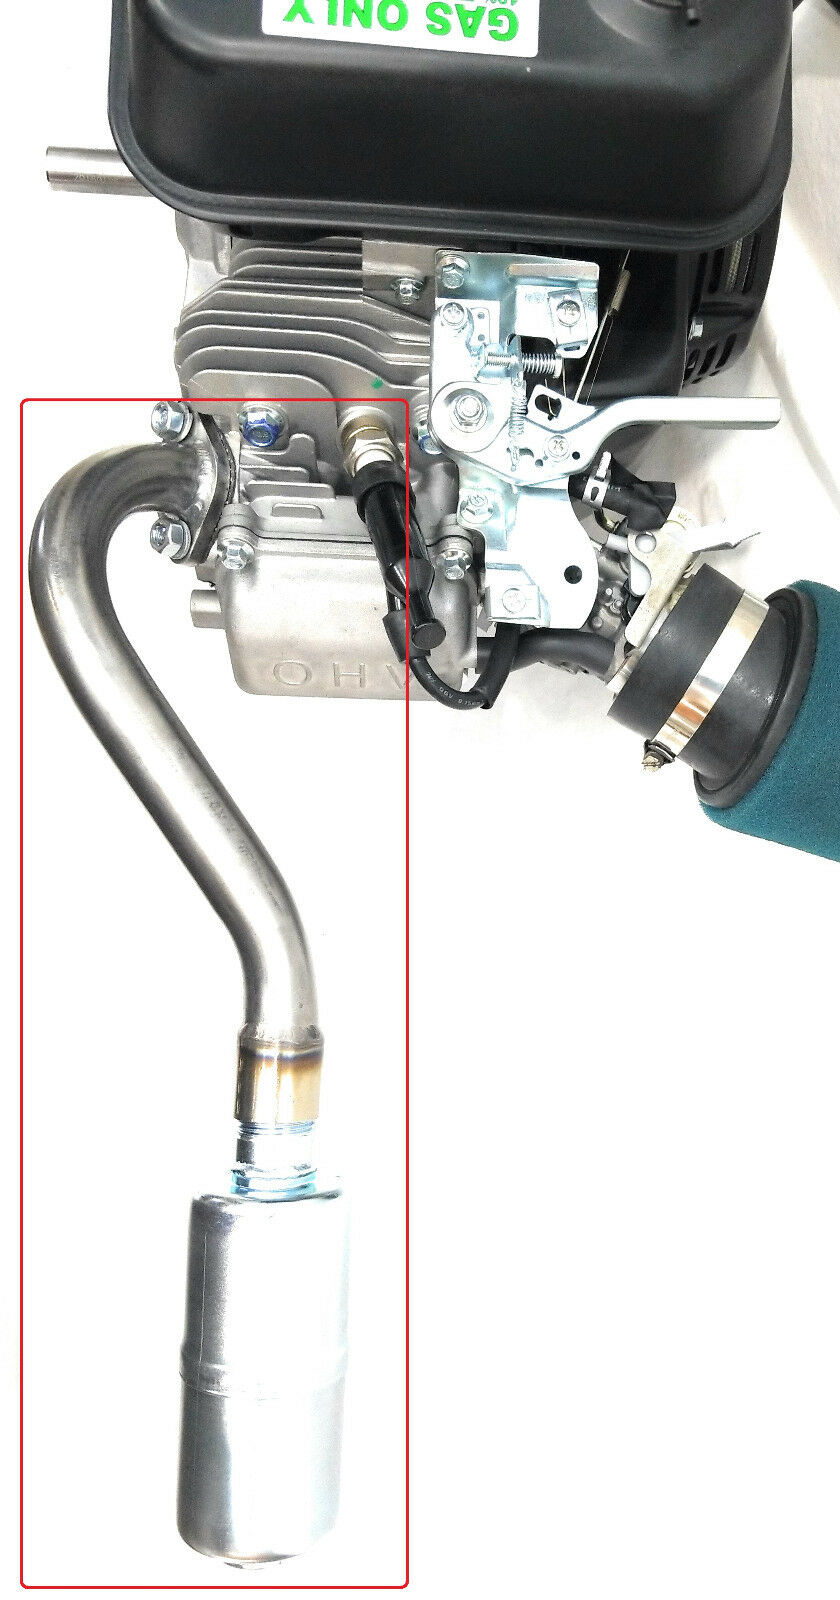 Center Rear  Exhaust With Muffler for  Predator 212cc, Honda GX160,GX200,  DuroMa  quality first consumers first